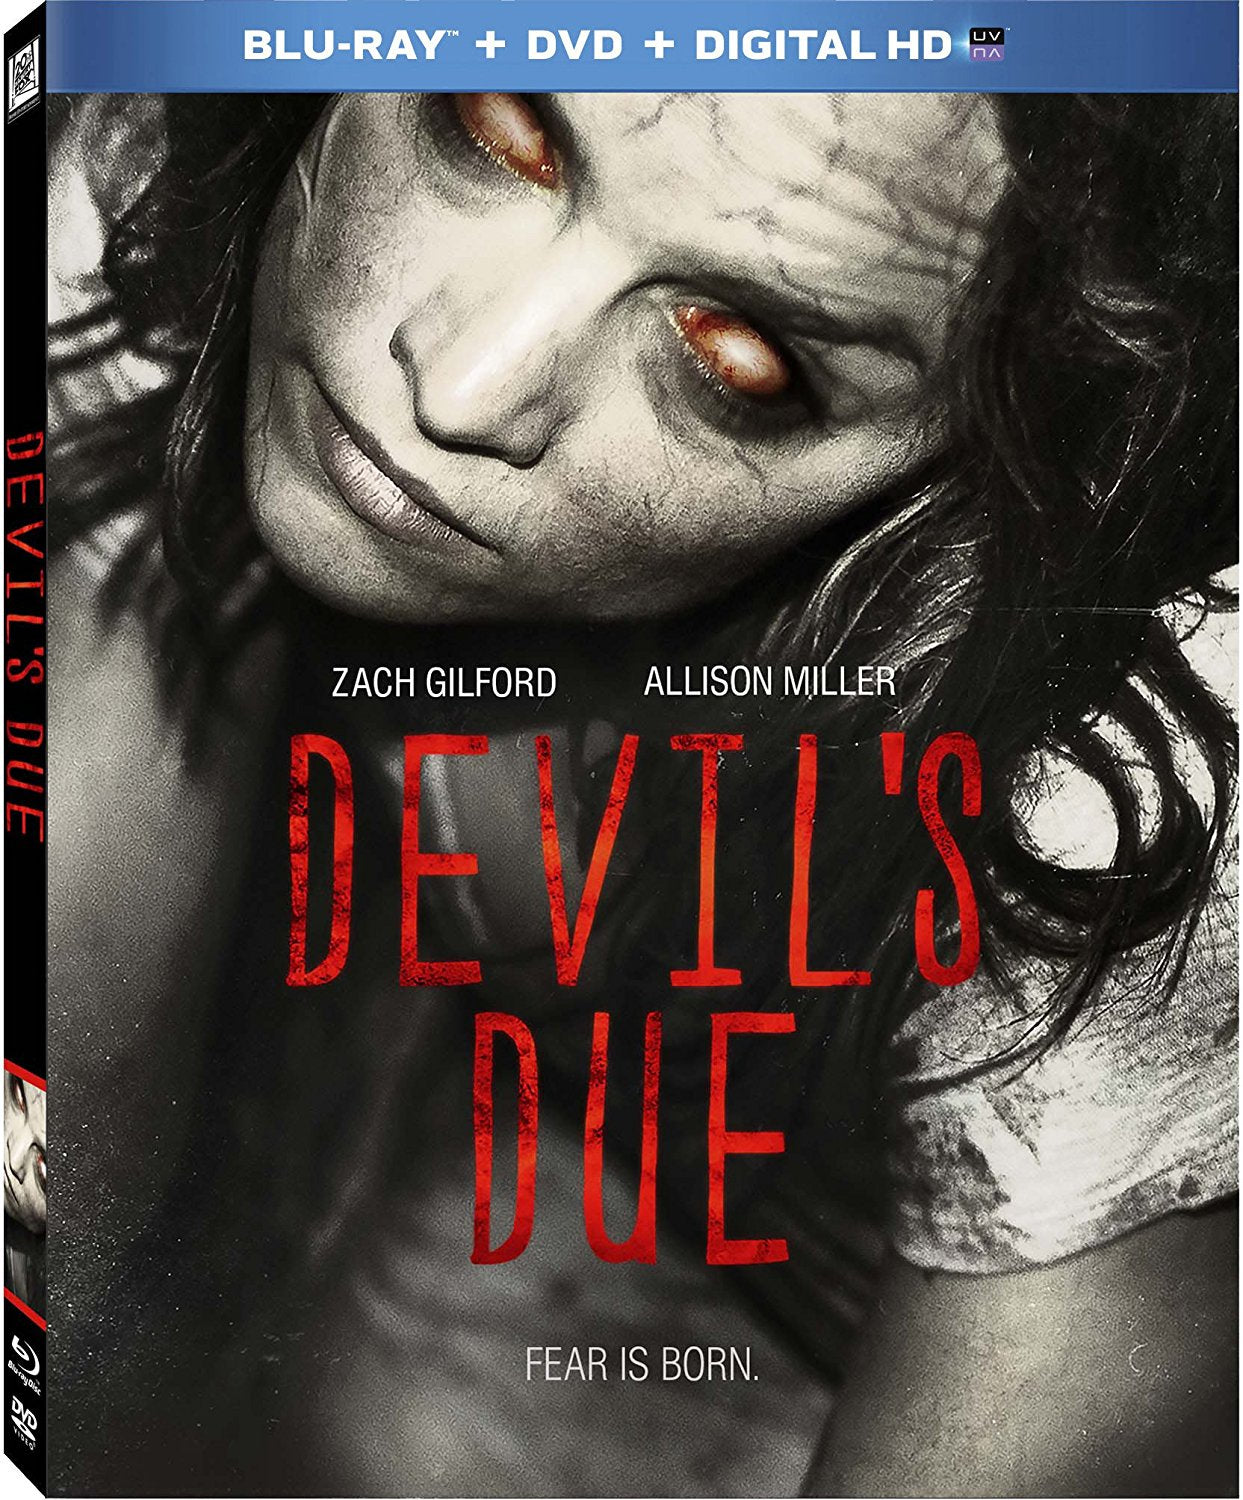 Devil's Due Blu-ray + DVD + Digital HD